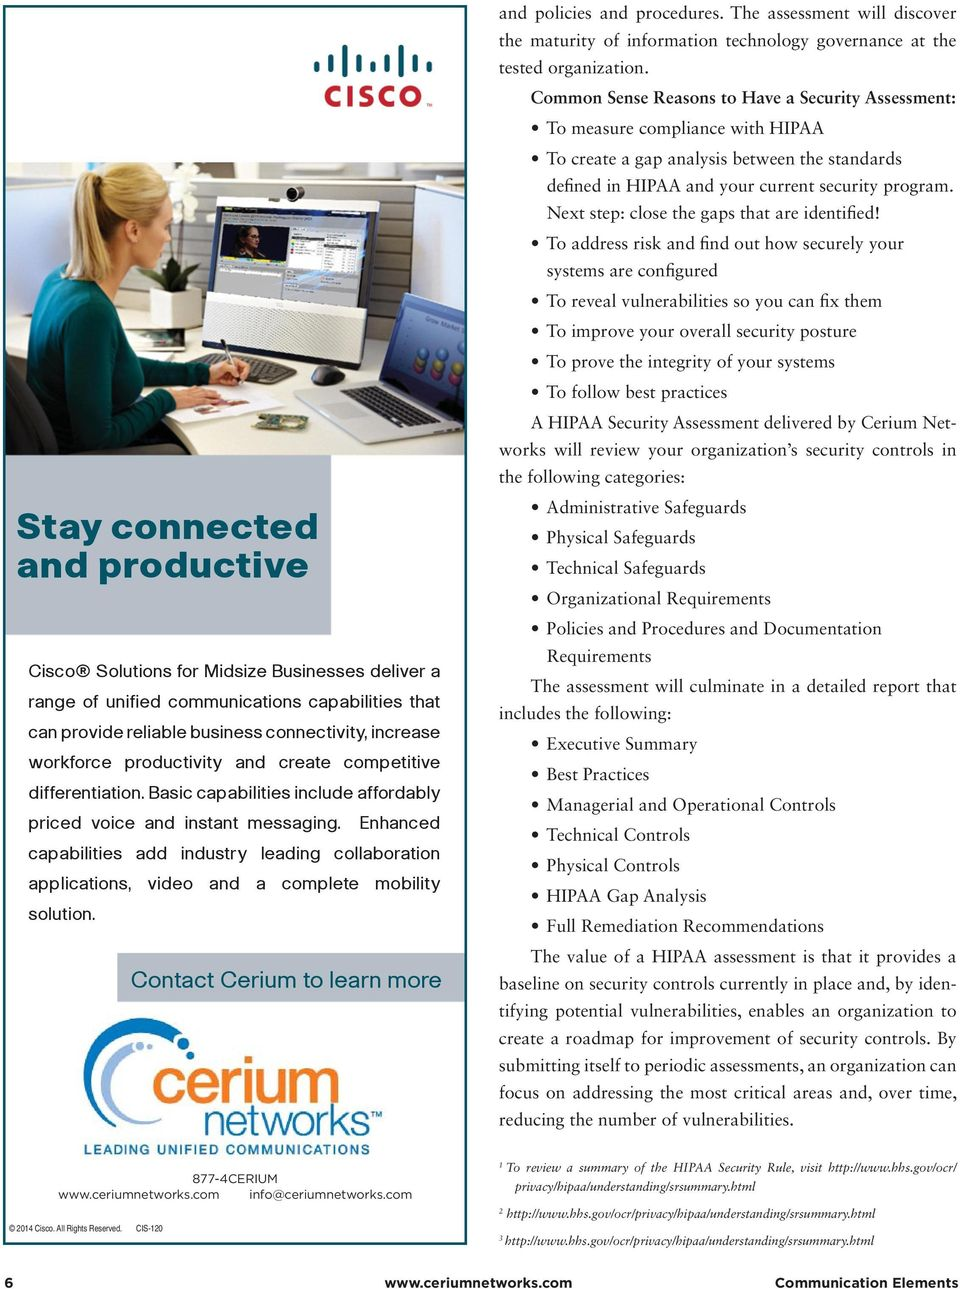 Enhanced capabilities add industry leading collaboration applications, video and a complete mobility solution. Contact Cerium to learn more and policies and procedures.